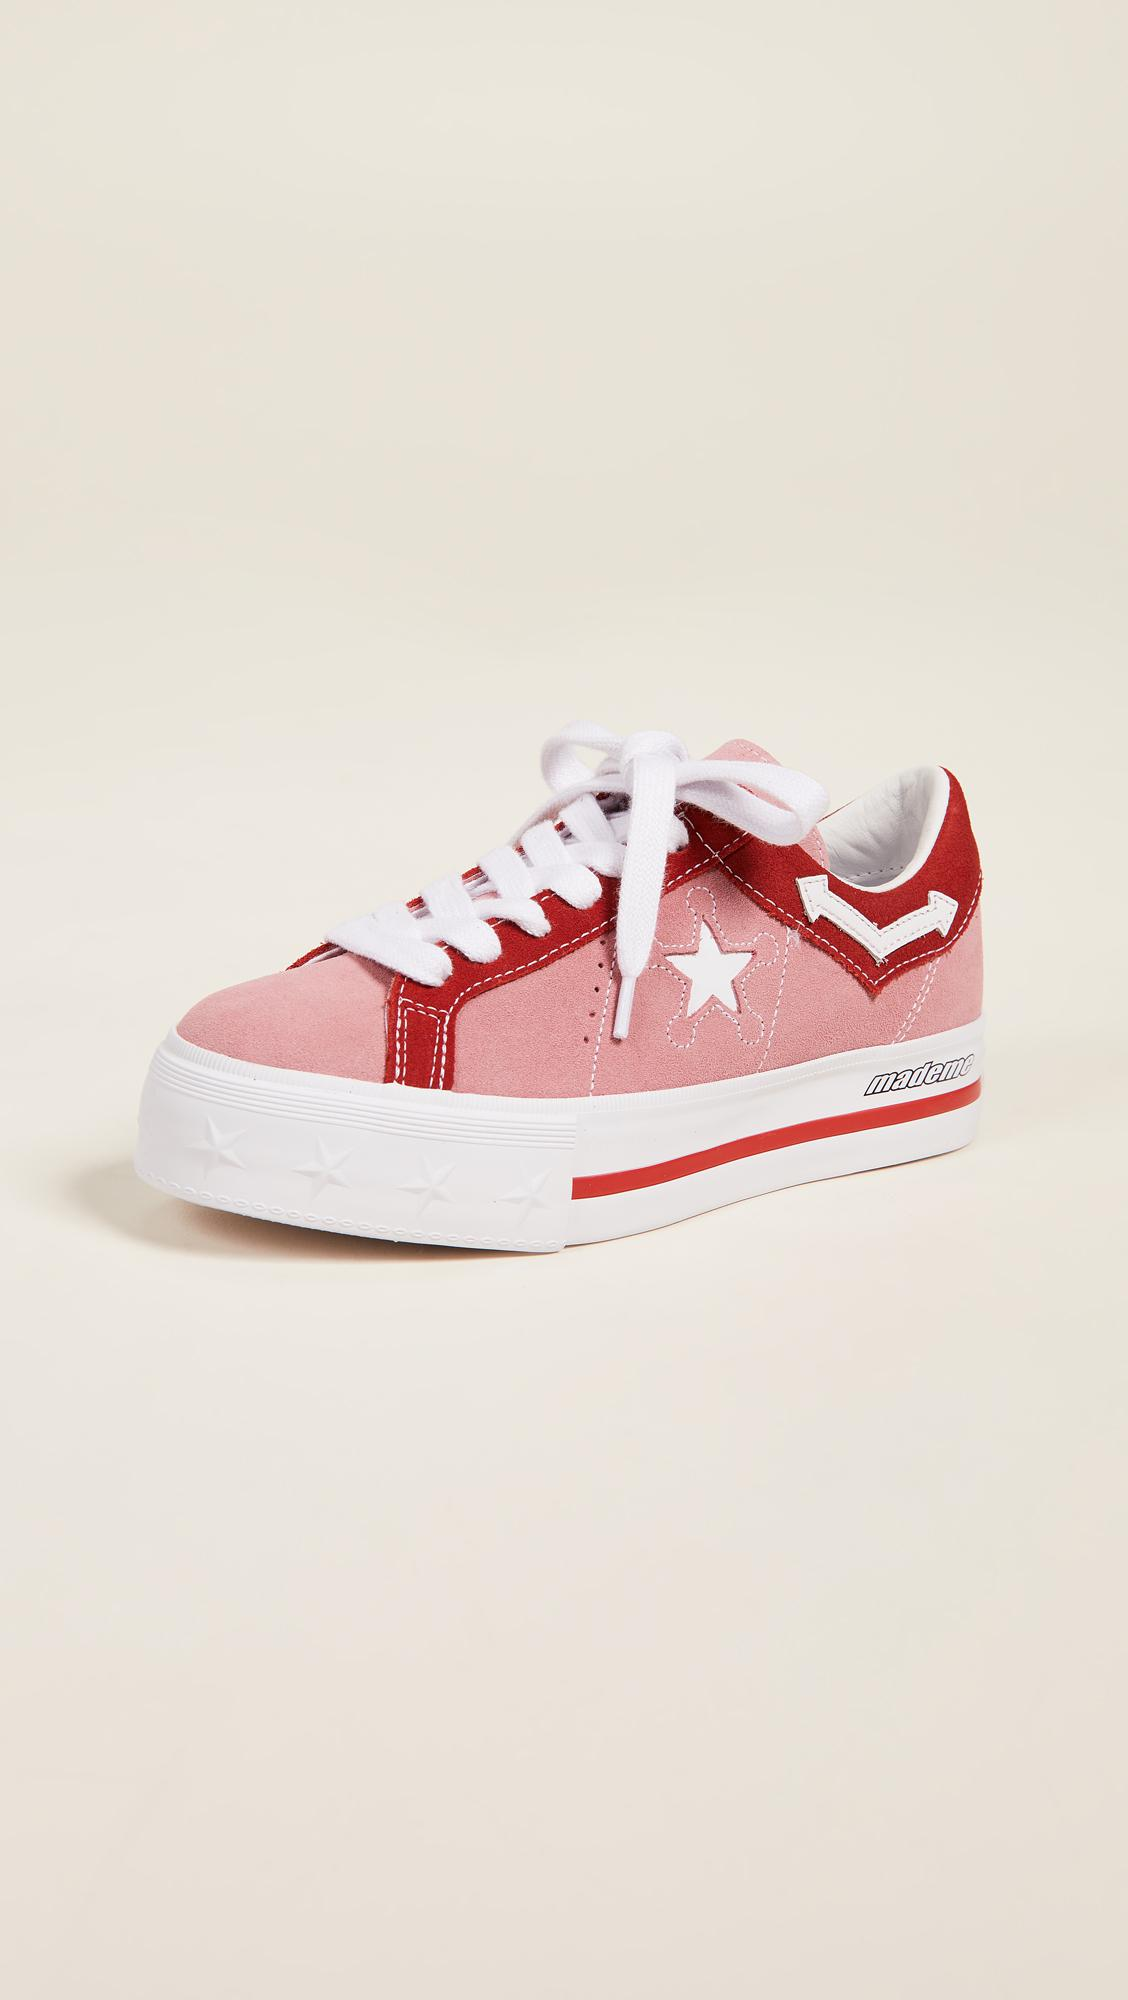 Converse Leather X Mademe One Star Lift